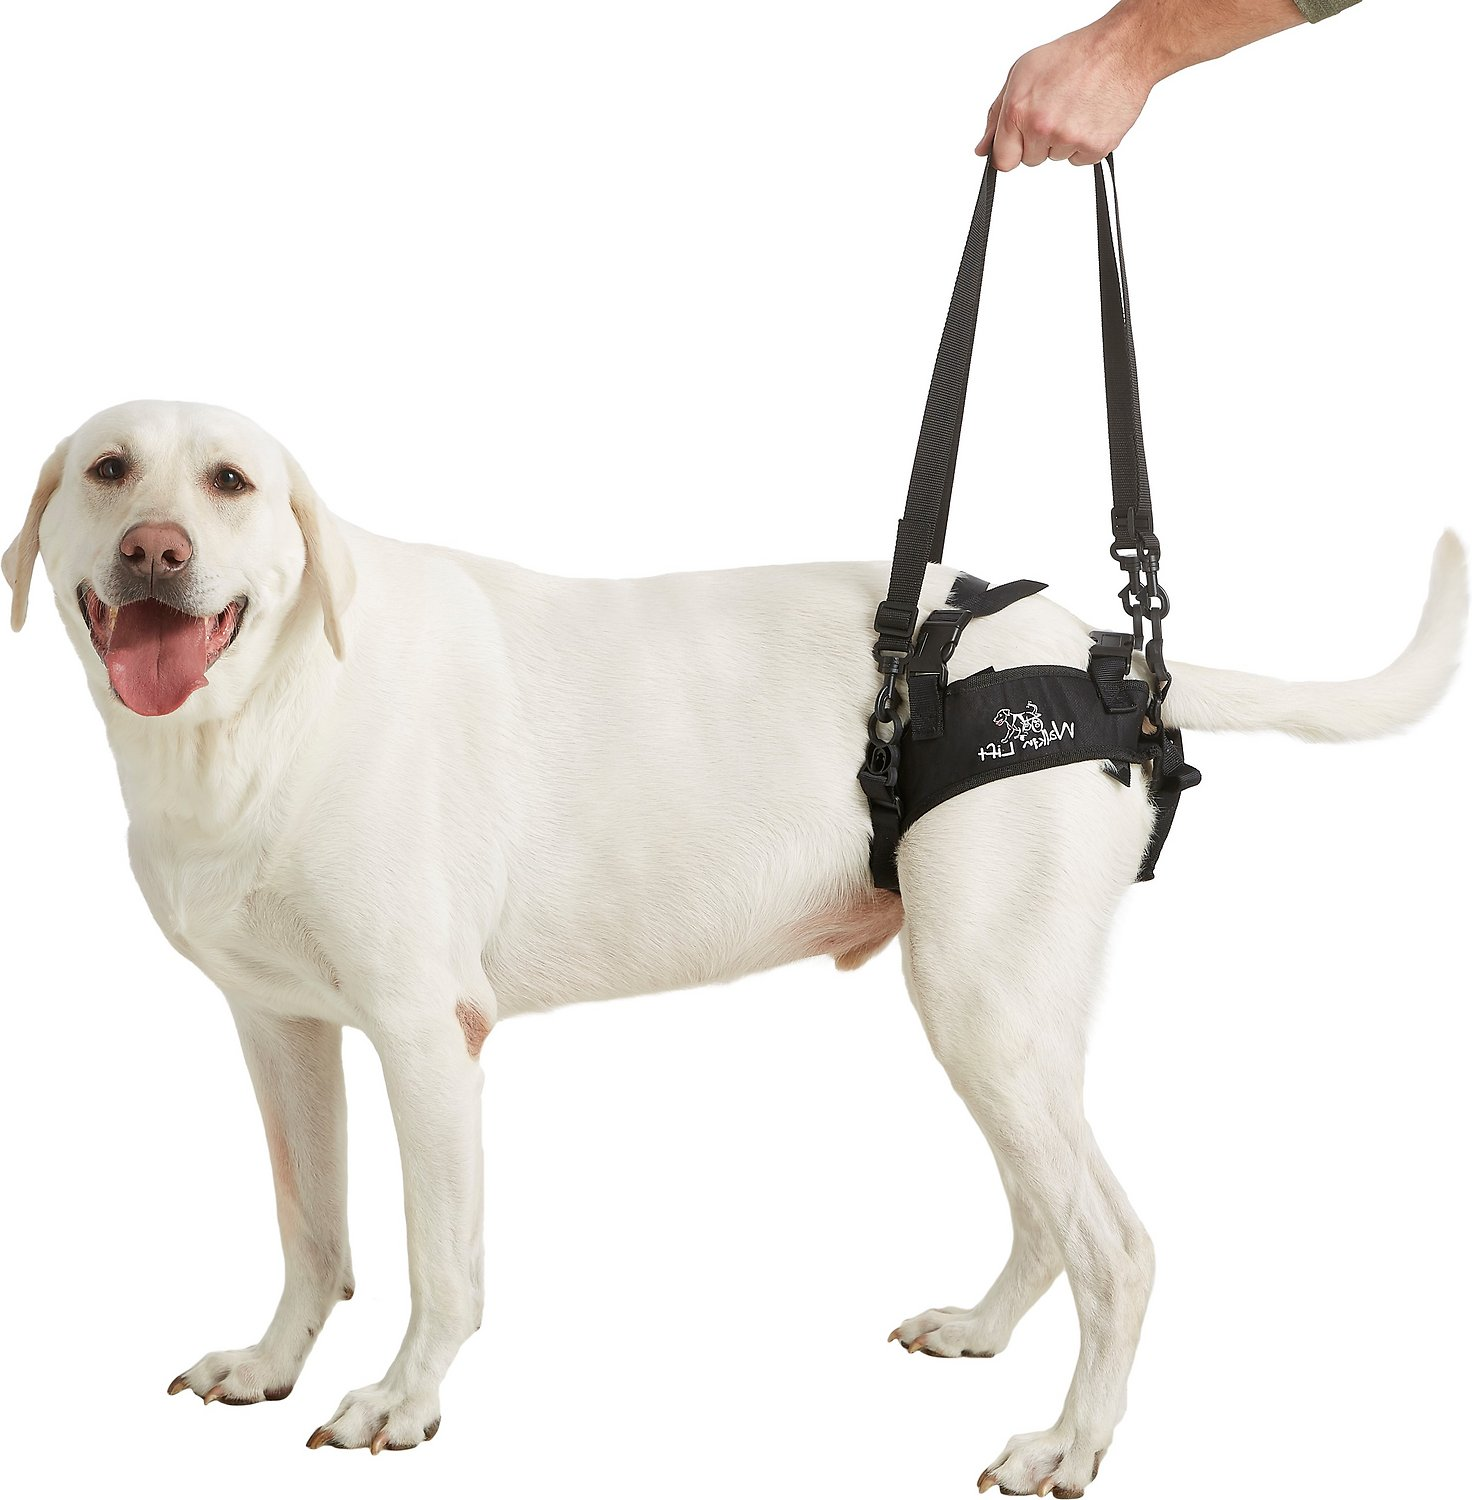 Handicappedpets Rear Lift Dog Harness Large